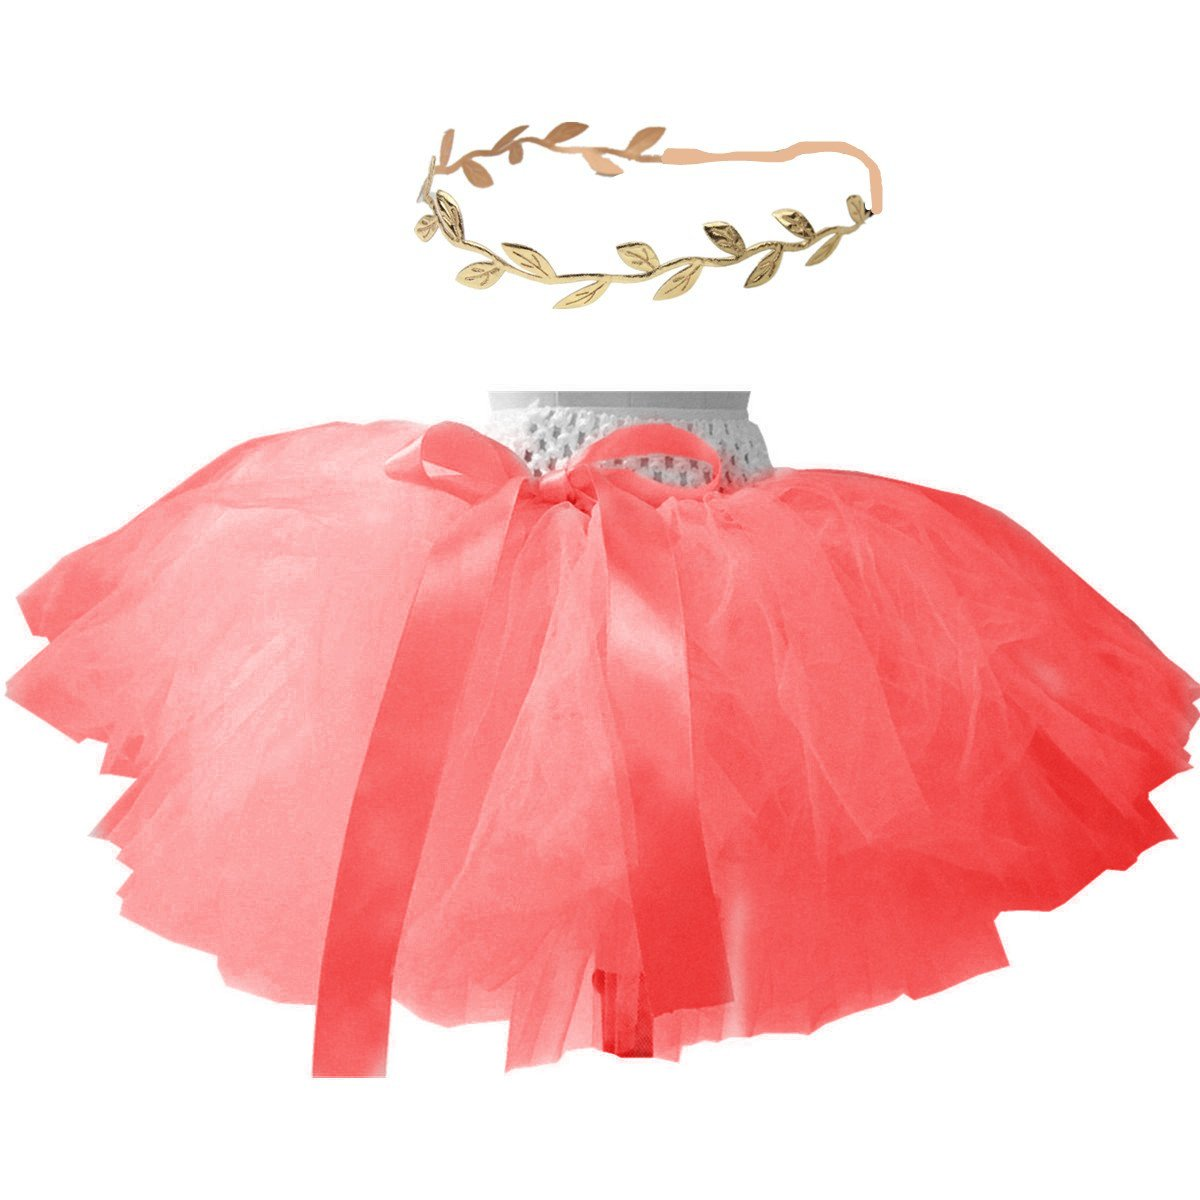 BBVESTIDO Baby Girls Tutu Skirts and Gold Headband Set for 1st Birthday Outfit